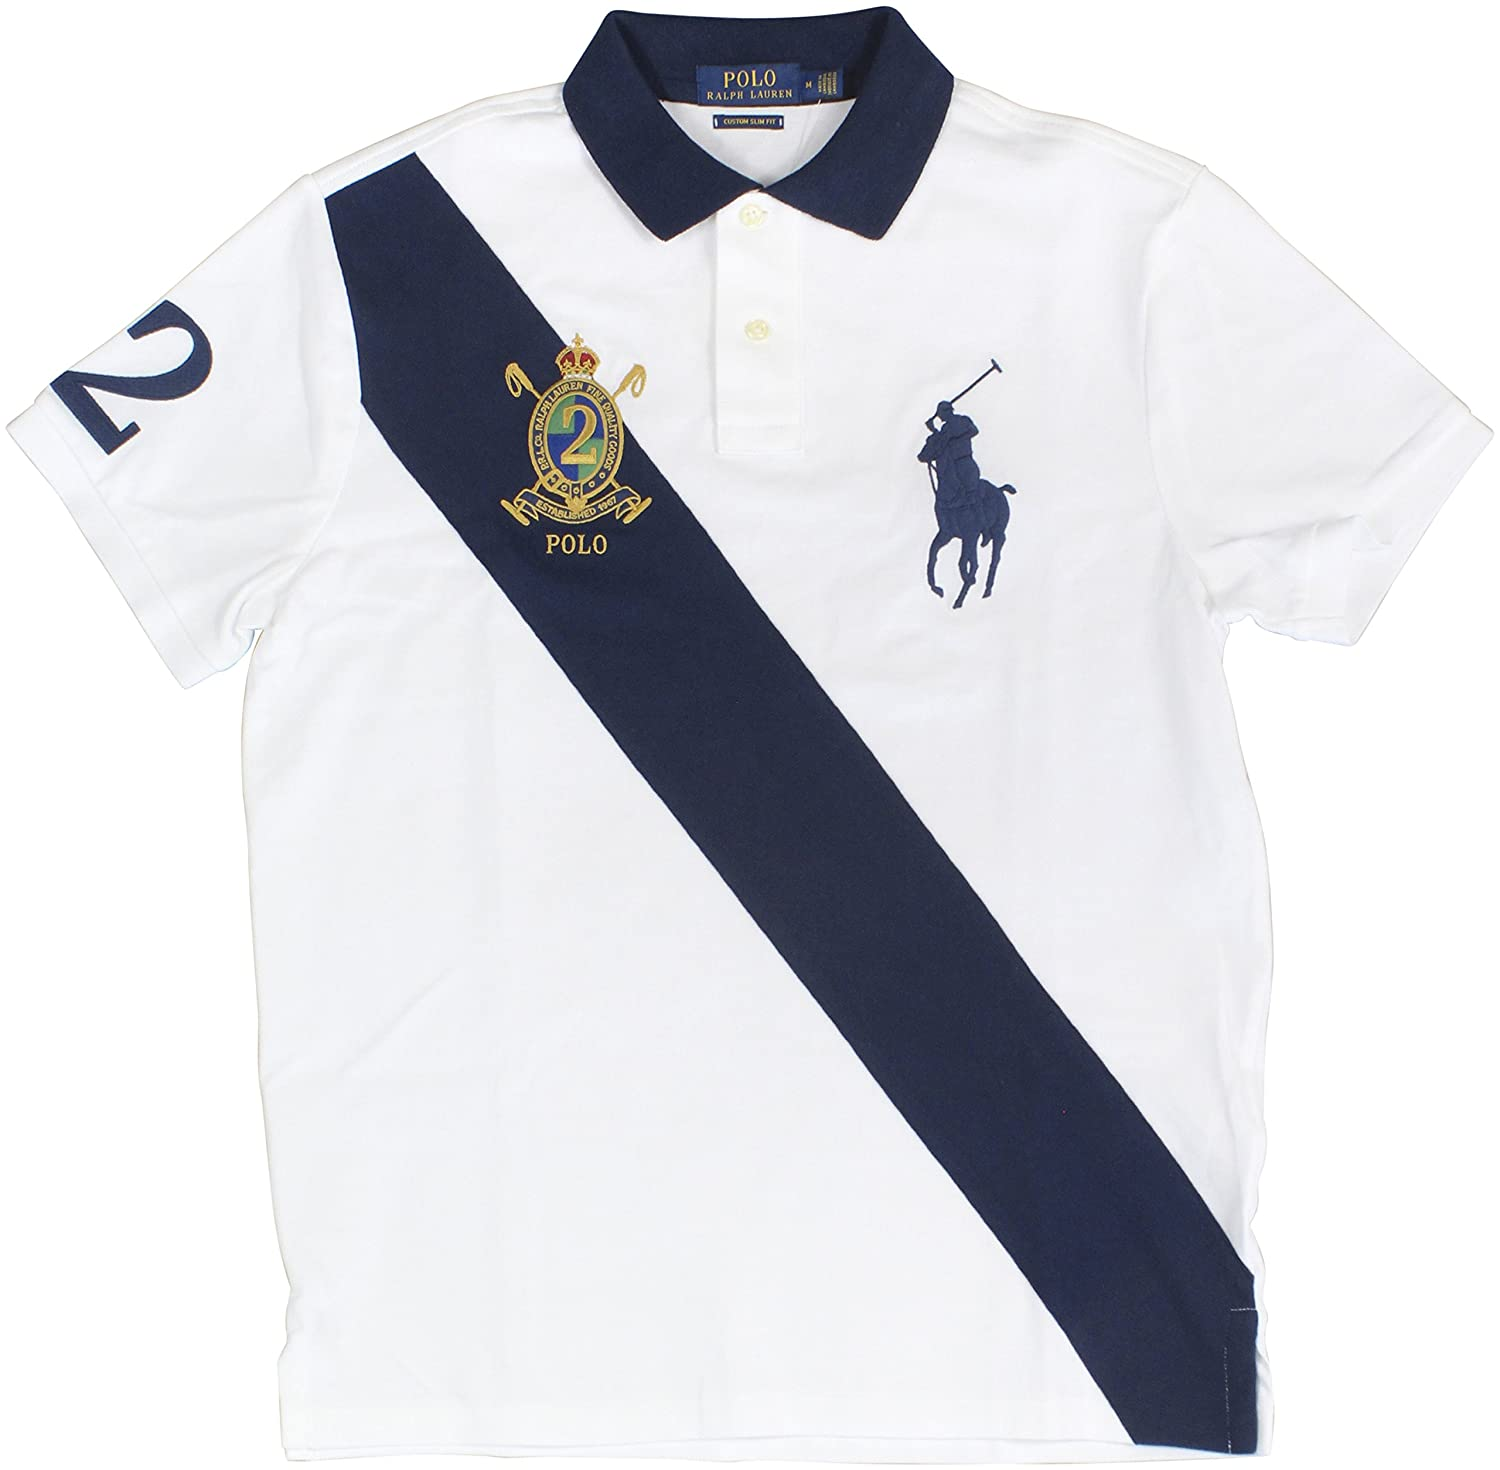 d892b005 Polo Ralph Lauren Men's Big Pony Crest Custom Slim Fit Mesh Sash Polo Shirt  (Medium, White MU) at Amazon Men's Clothing store: